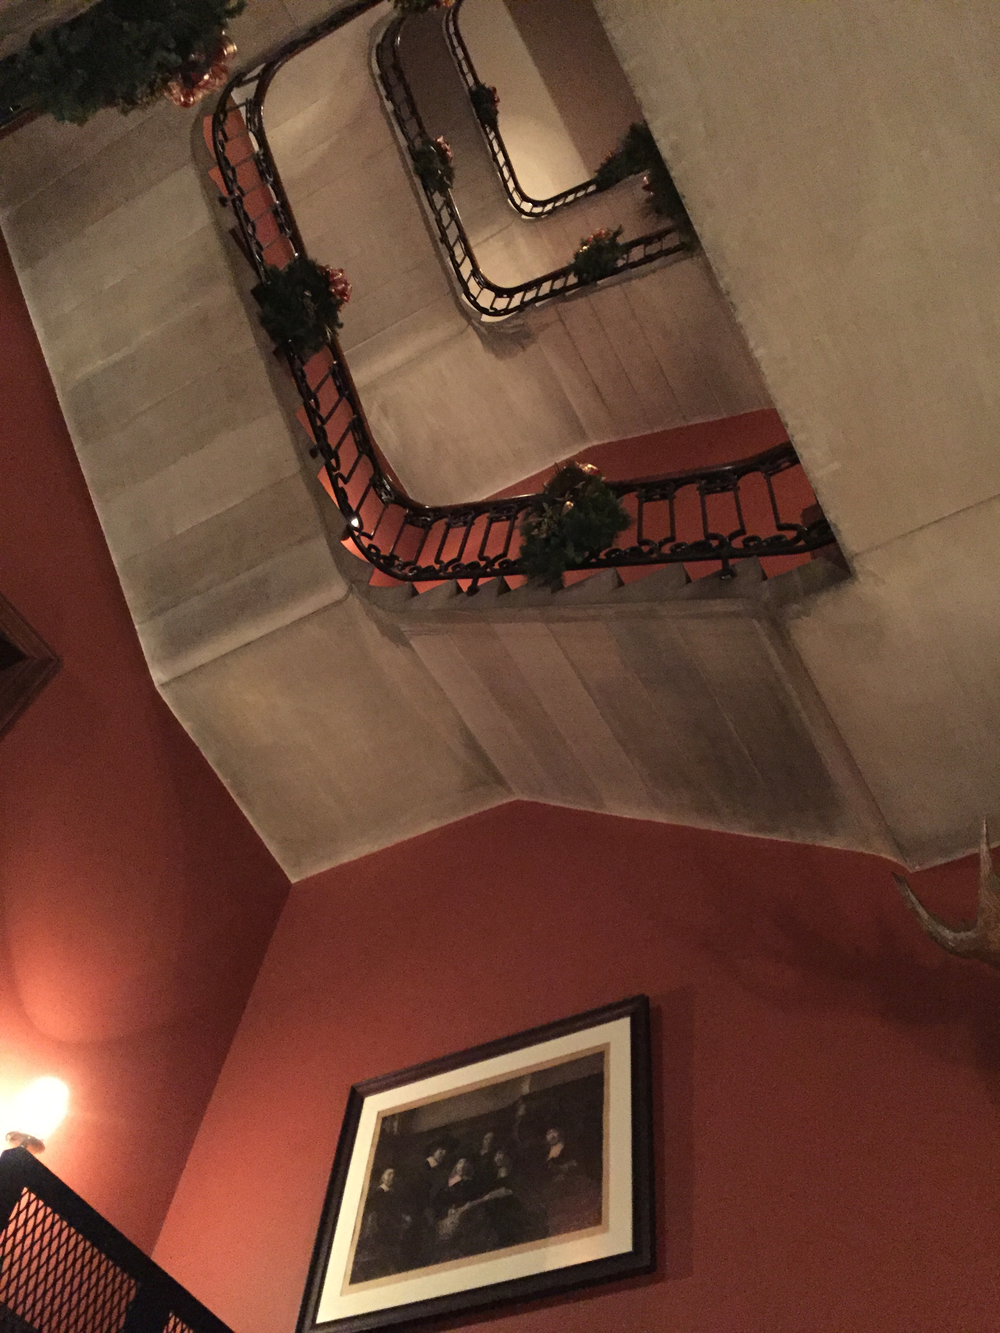 A very unique perspective on the staircase.